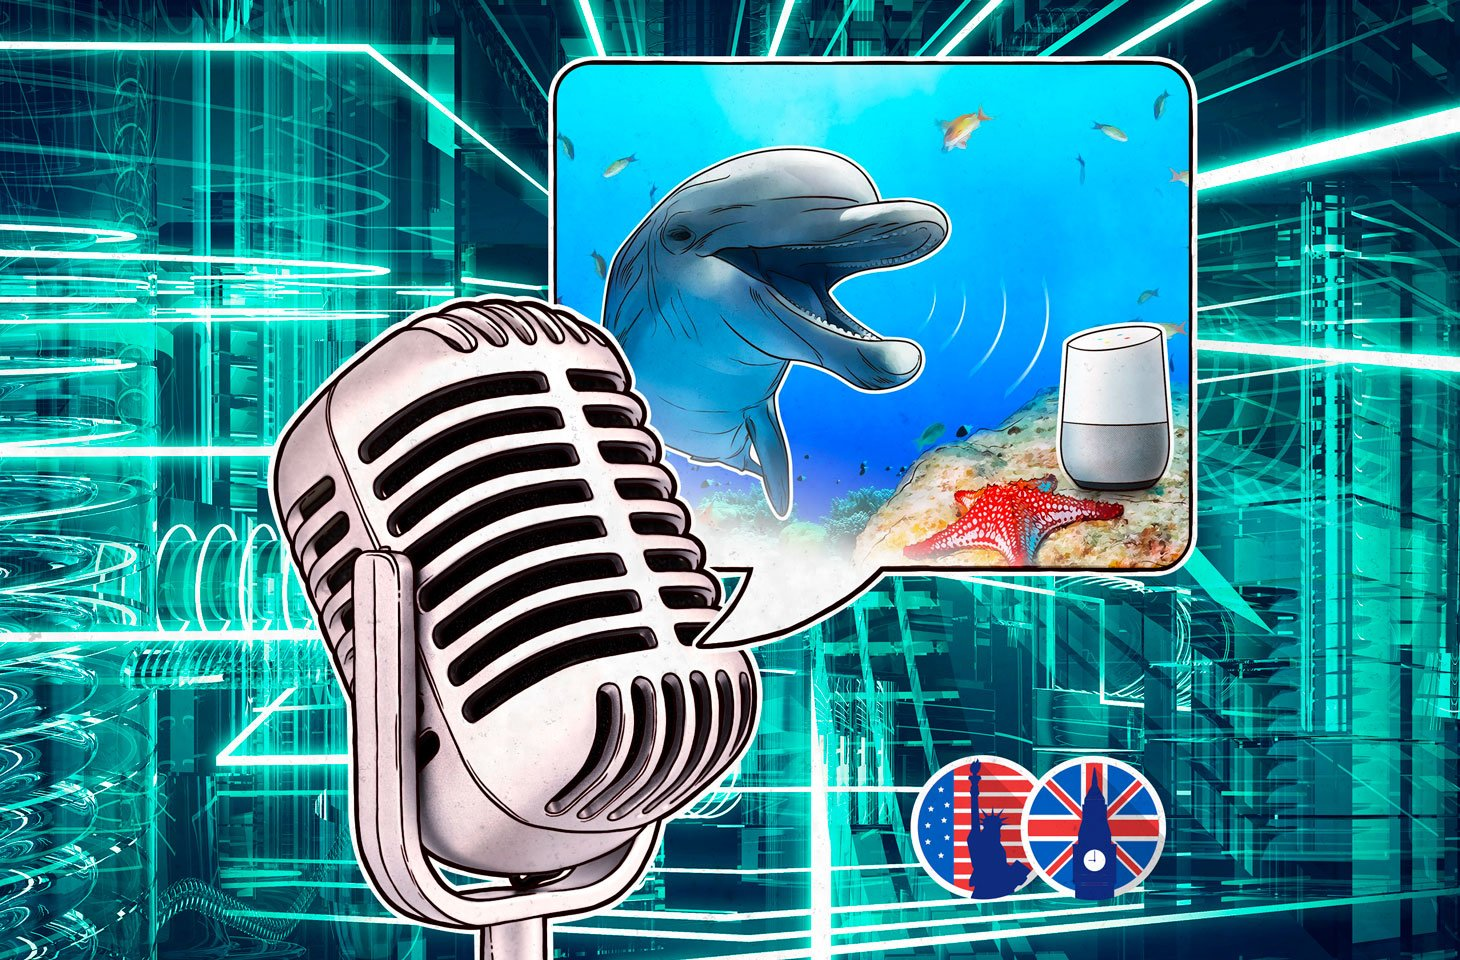 Kaspersky podcast: Should you tell guests if you have a smart speaker in your home?